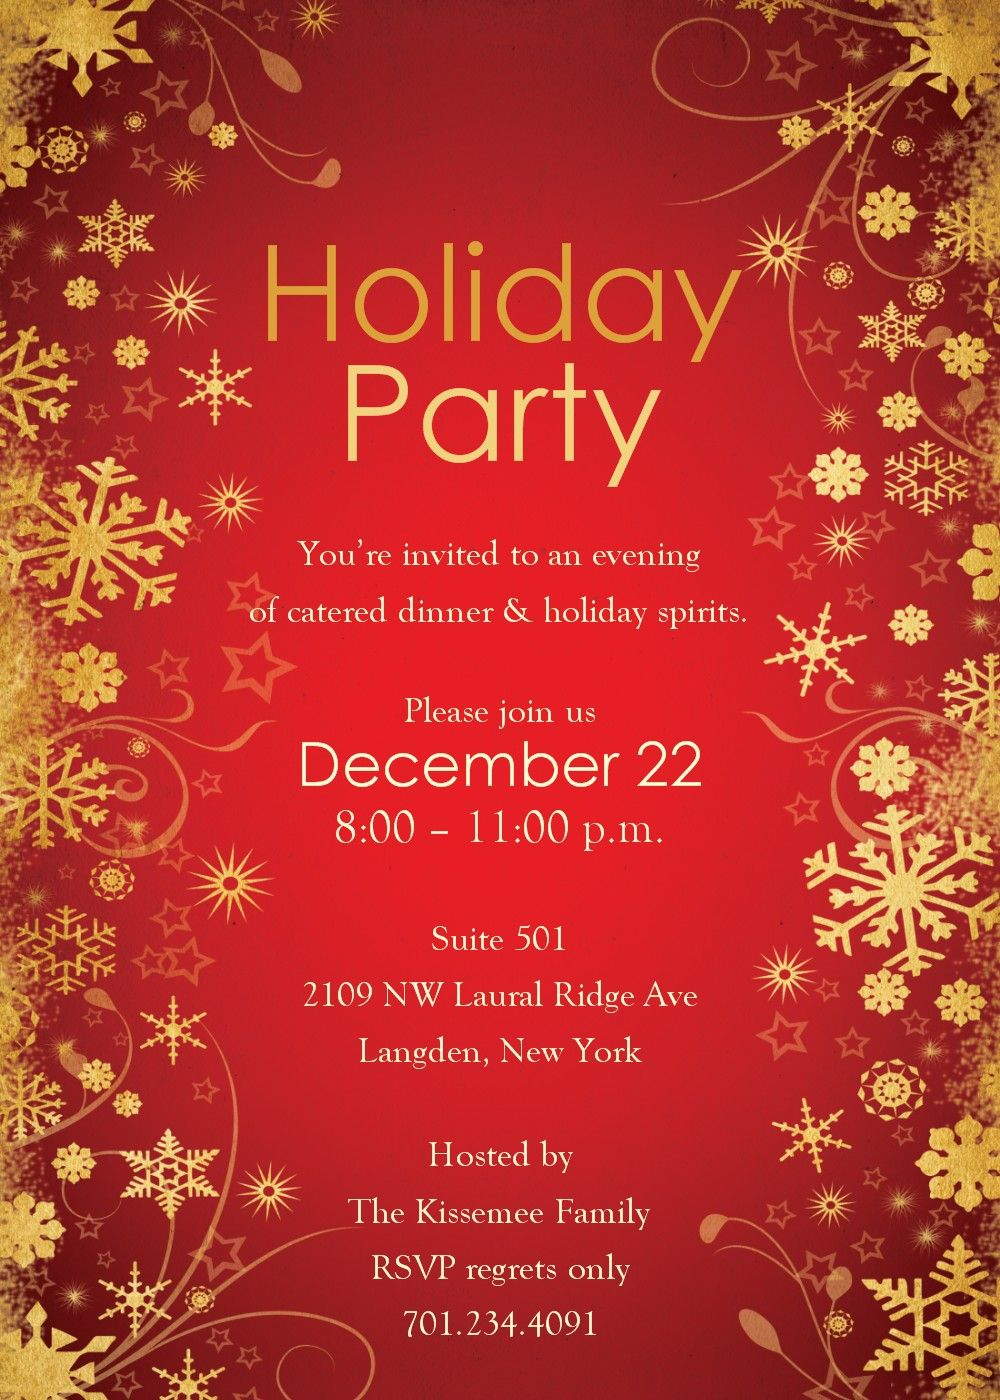 Christmas Party Invitations Templates Word | Cookie Swap | Christmas - Free Printable Christmas Party Flyer Templates